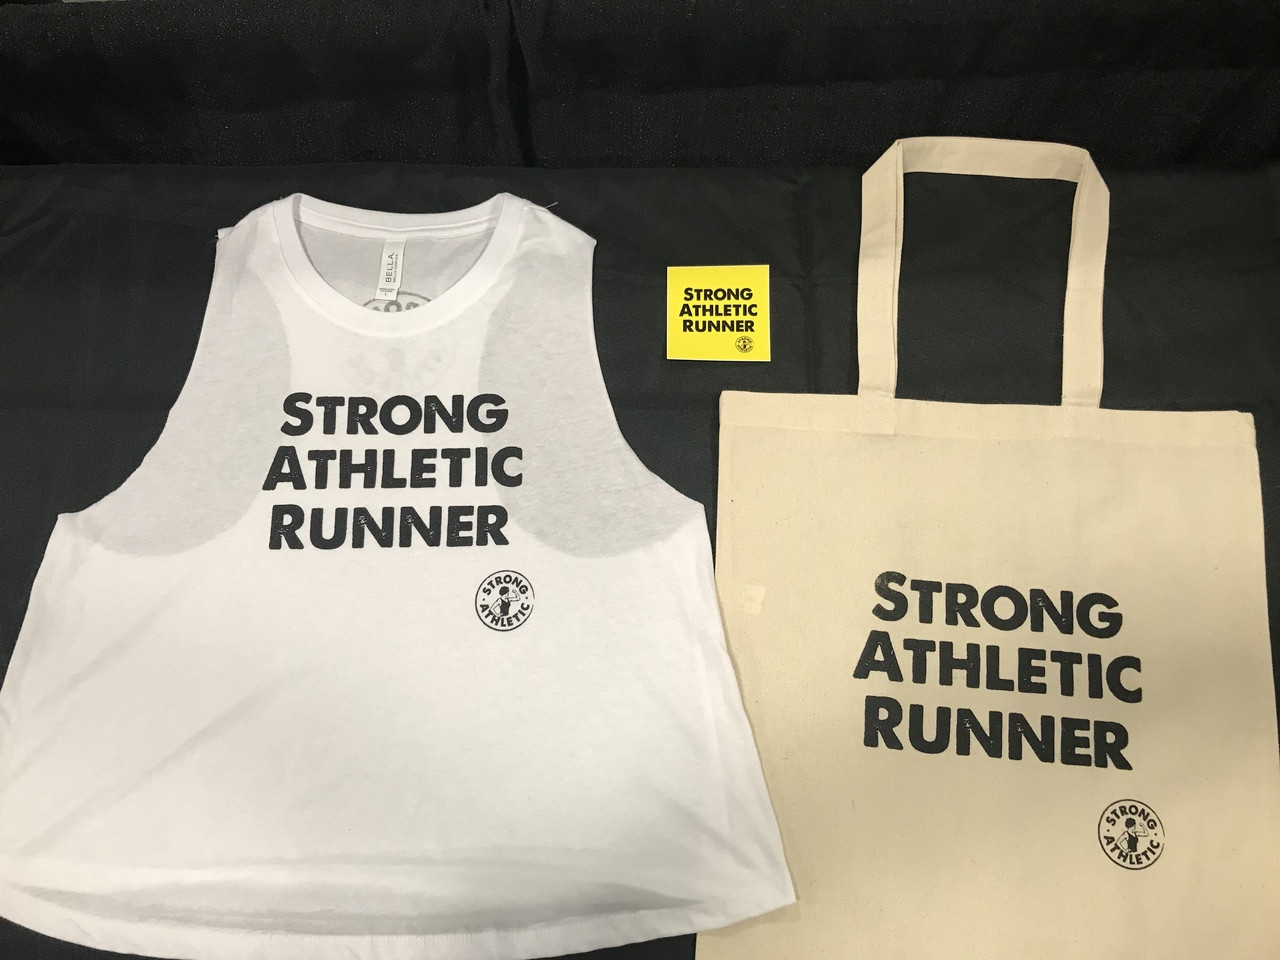 dc7ace51 This is the front of the Strong Athletic Runner Crop Top Tank Top along  with the